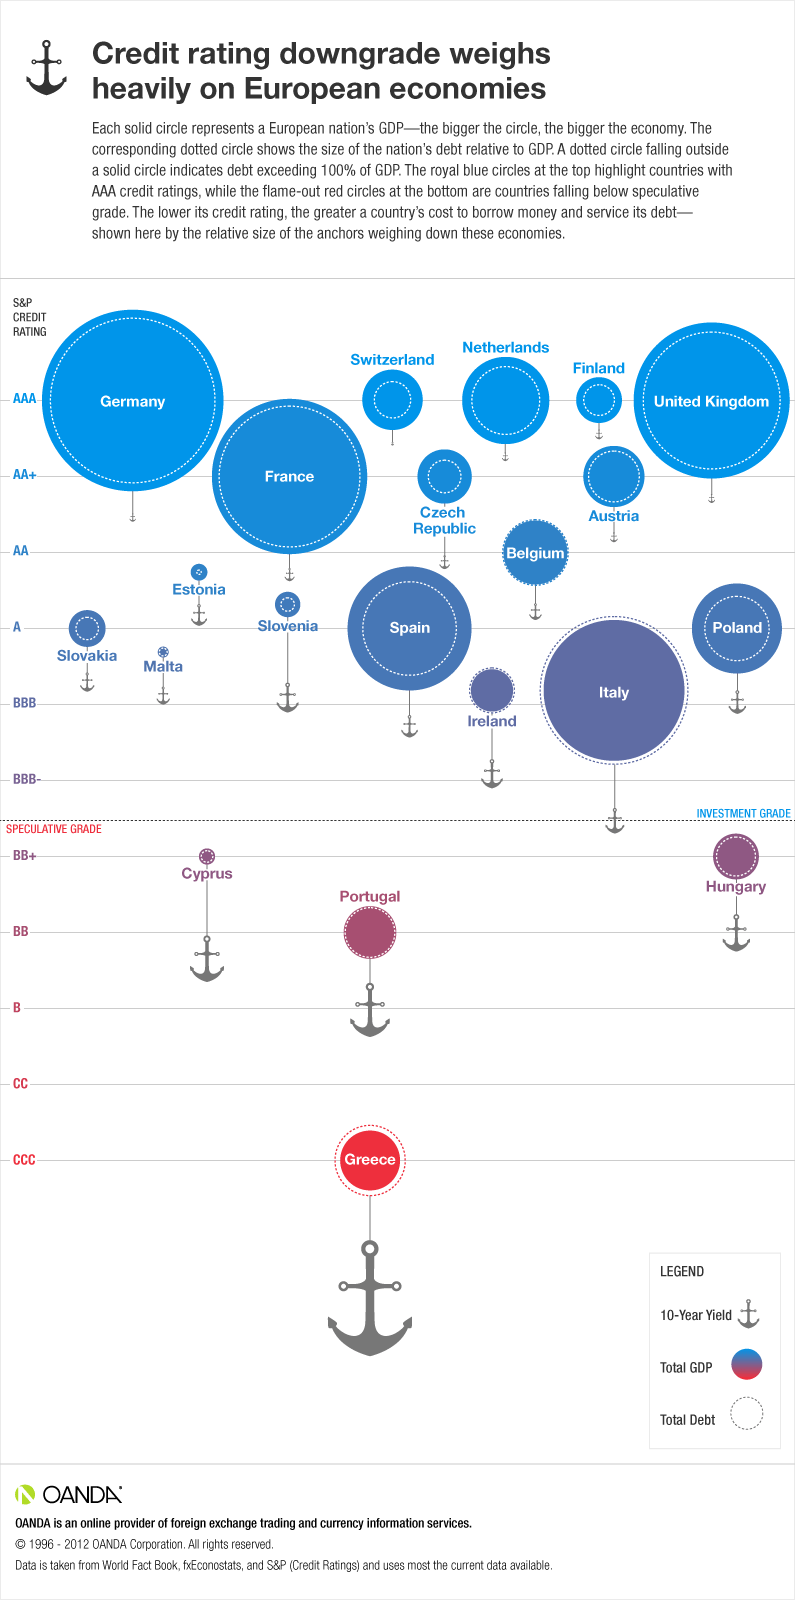 Sovereign income, debt, and credit by region